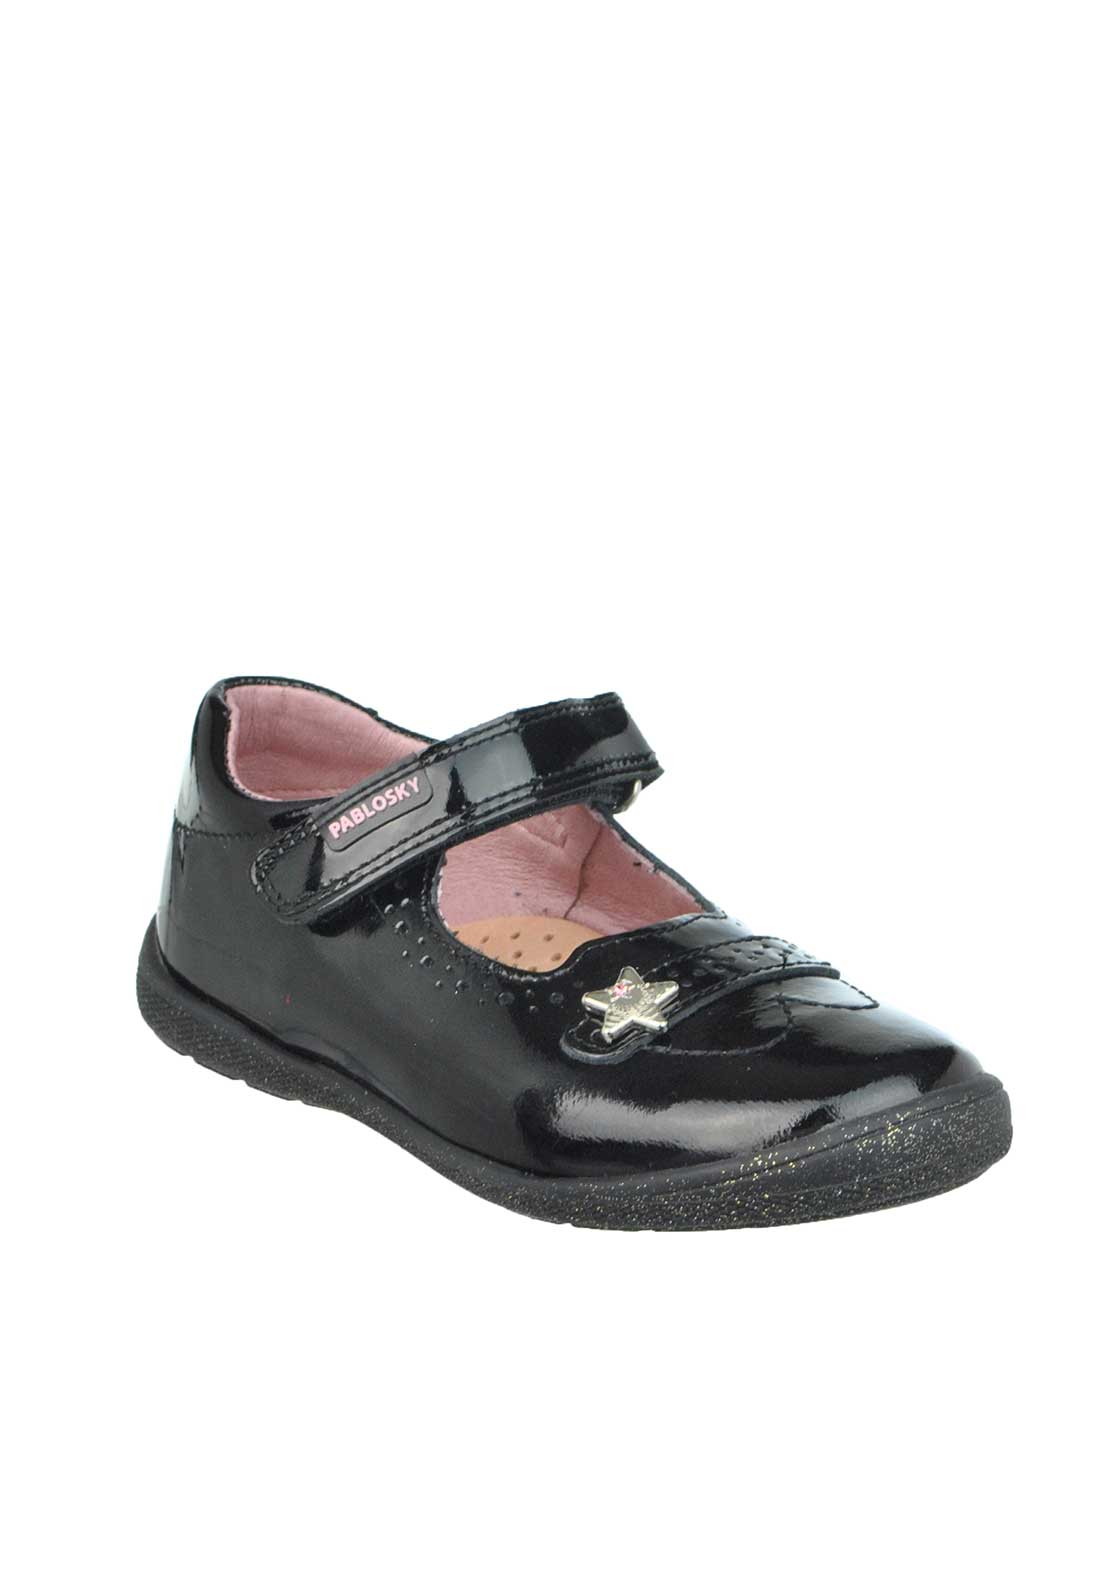 Pablosky Baby Girls Patent Leather Velcro Strap Pumps, Black